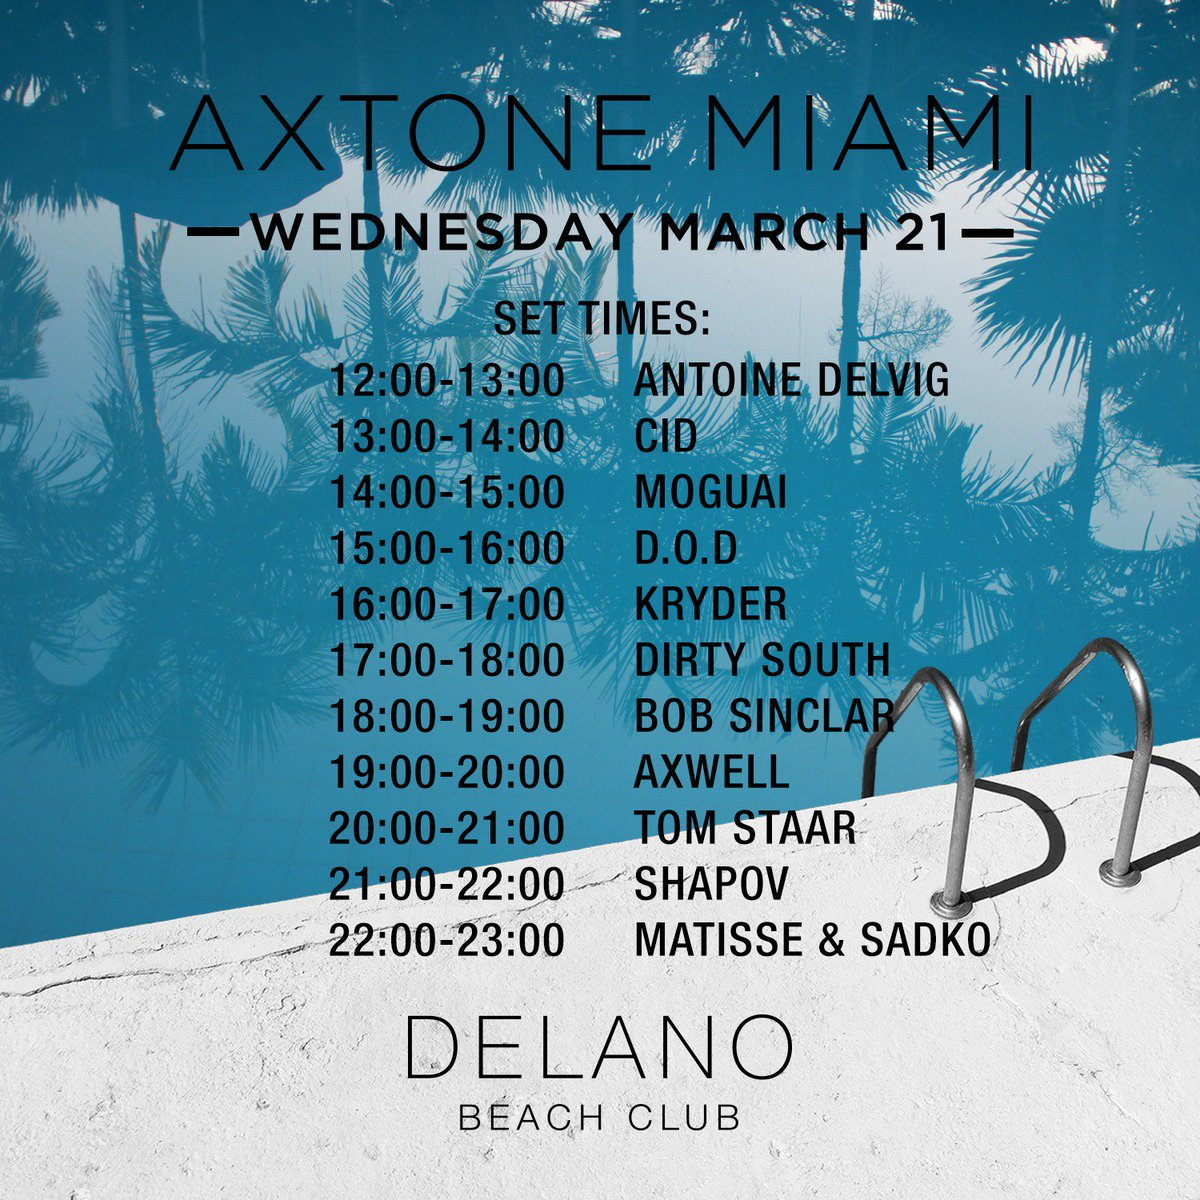 wednesday axtone